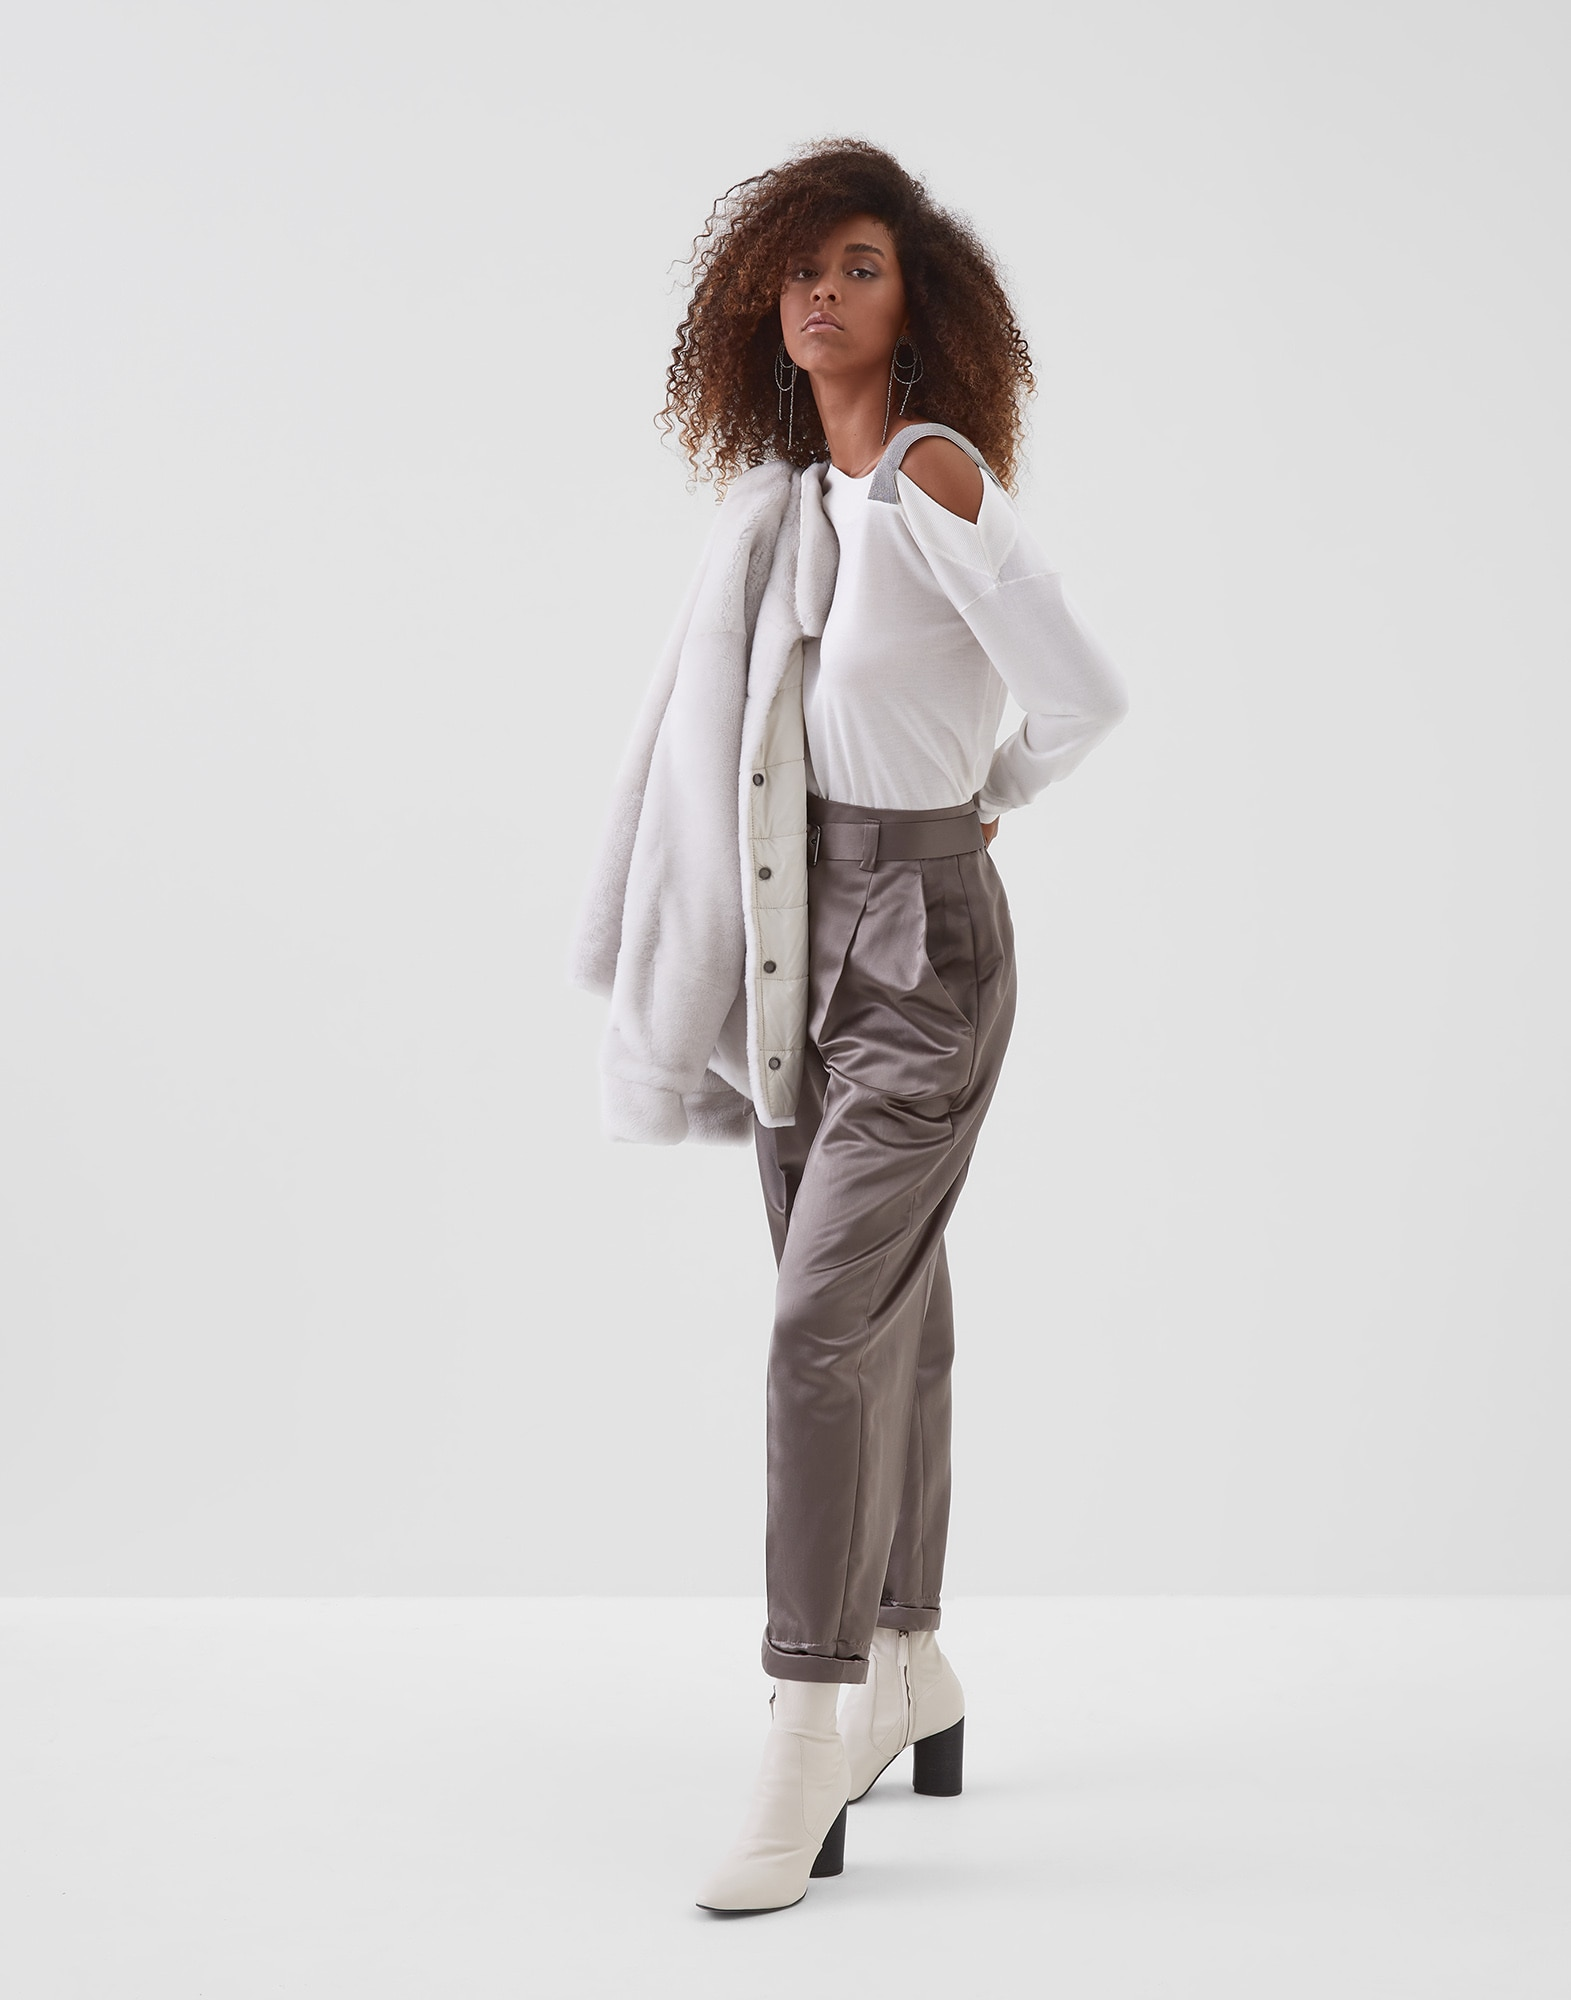 Scoop Neck White Woman 3 - Brunello Cucinelli